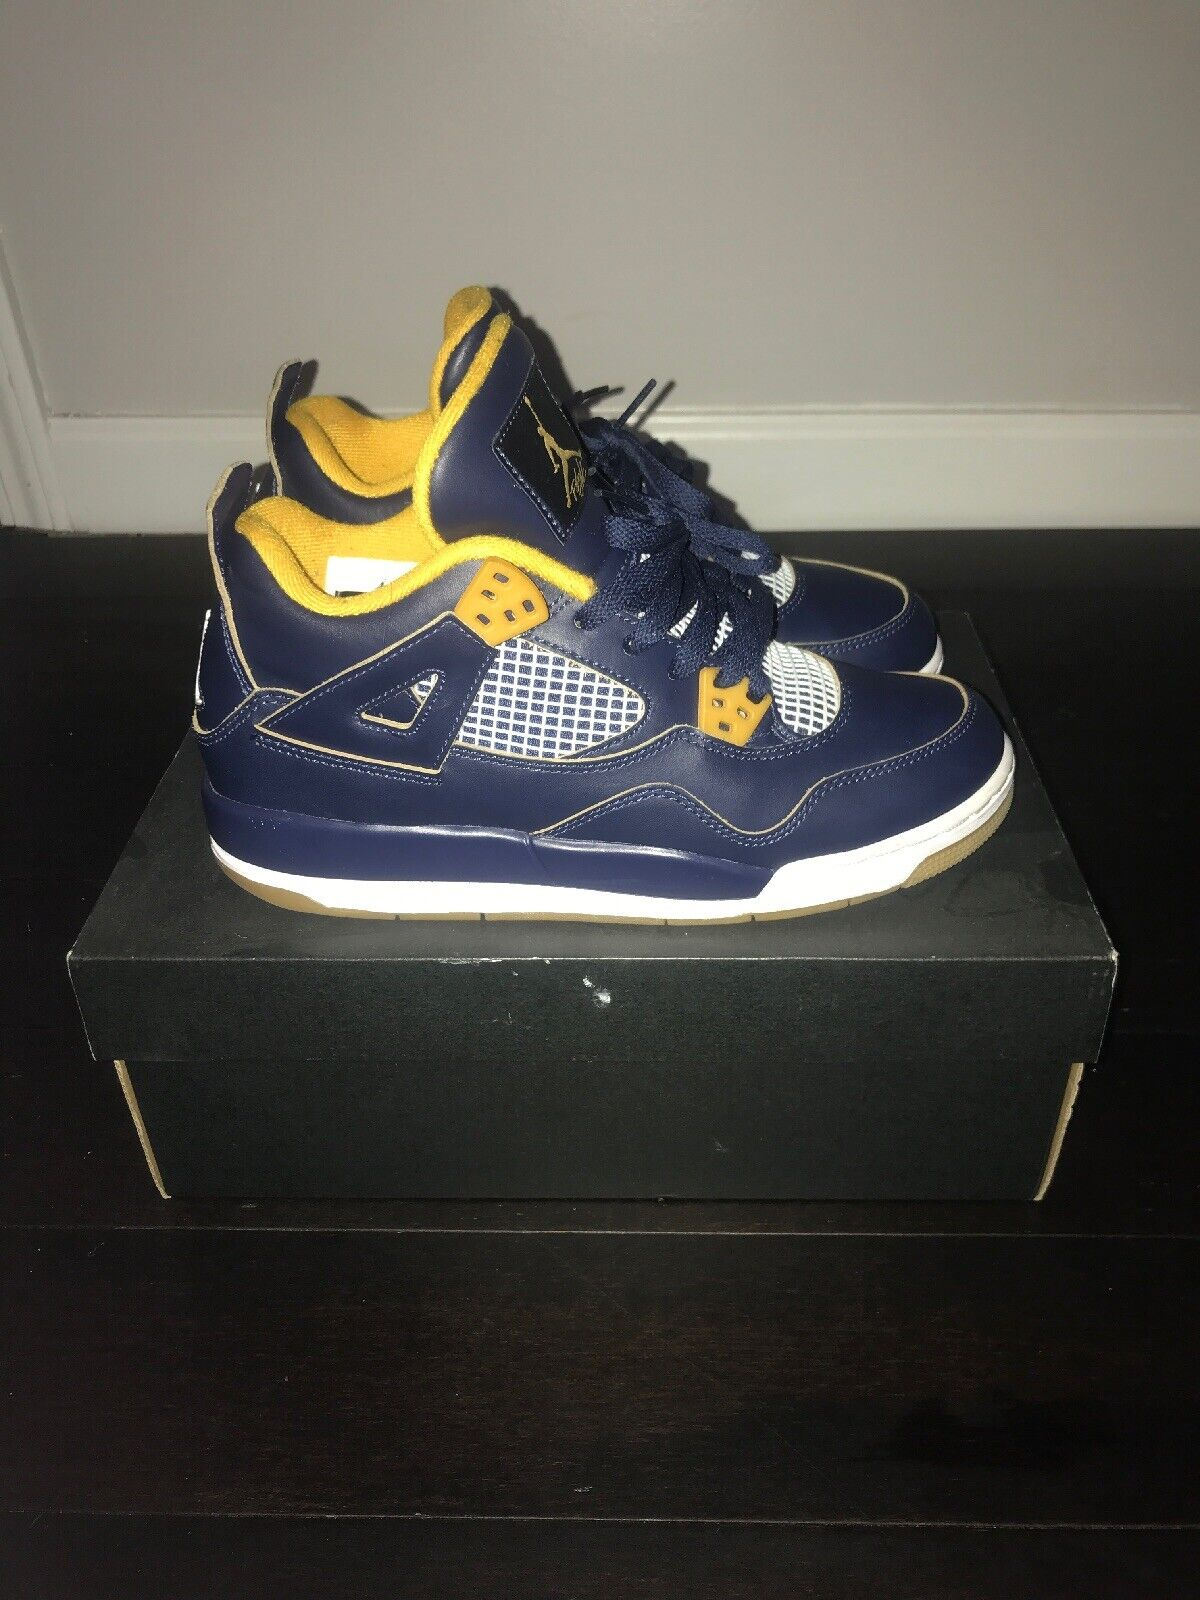 60b3453666f1 Jordan Retro 4 Dunk From From From Above Youth Size 6 2ed0d0 ...